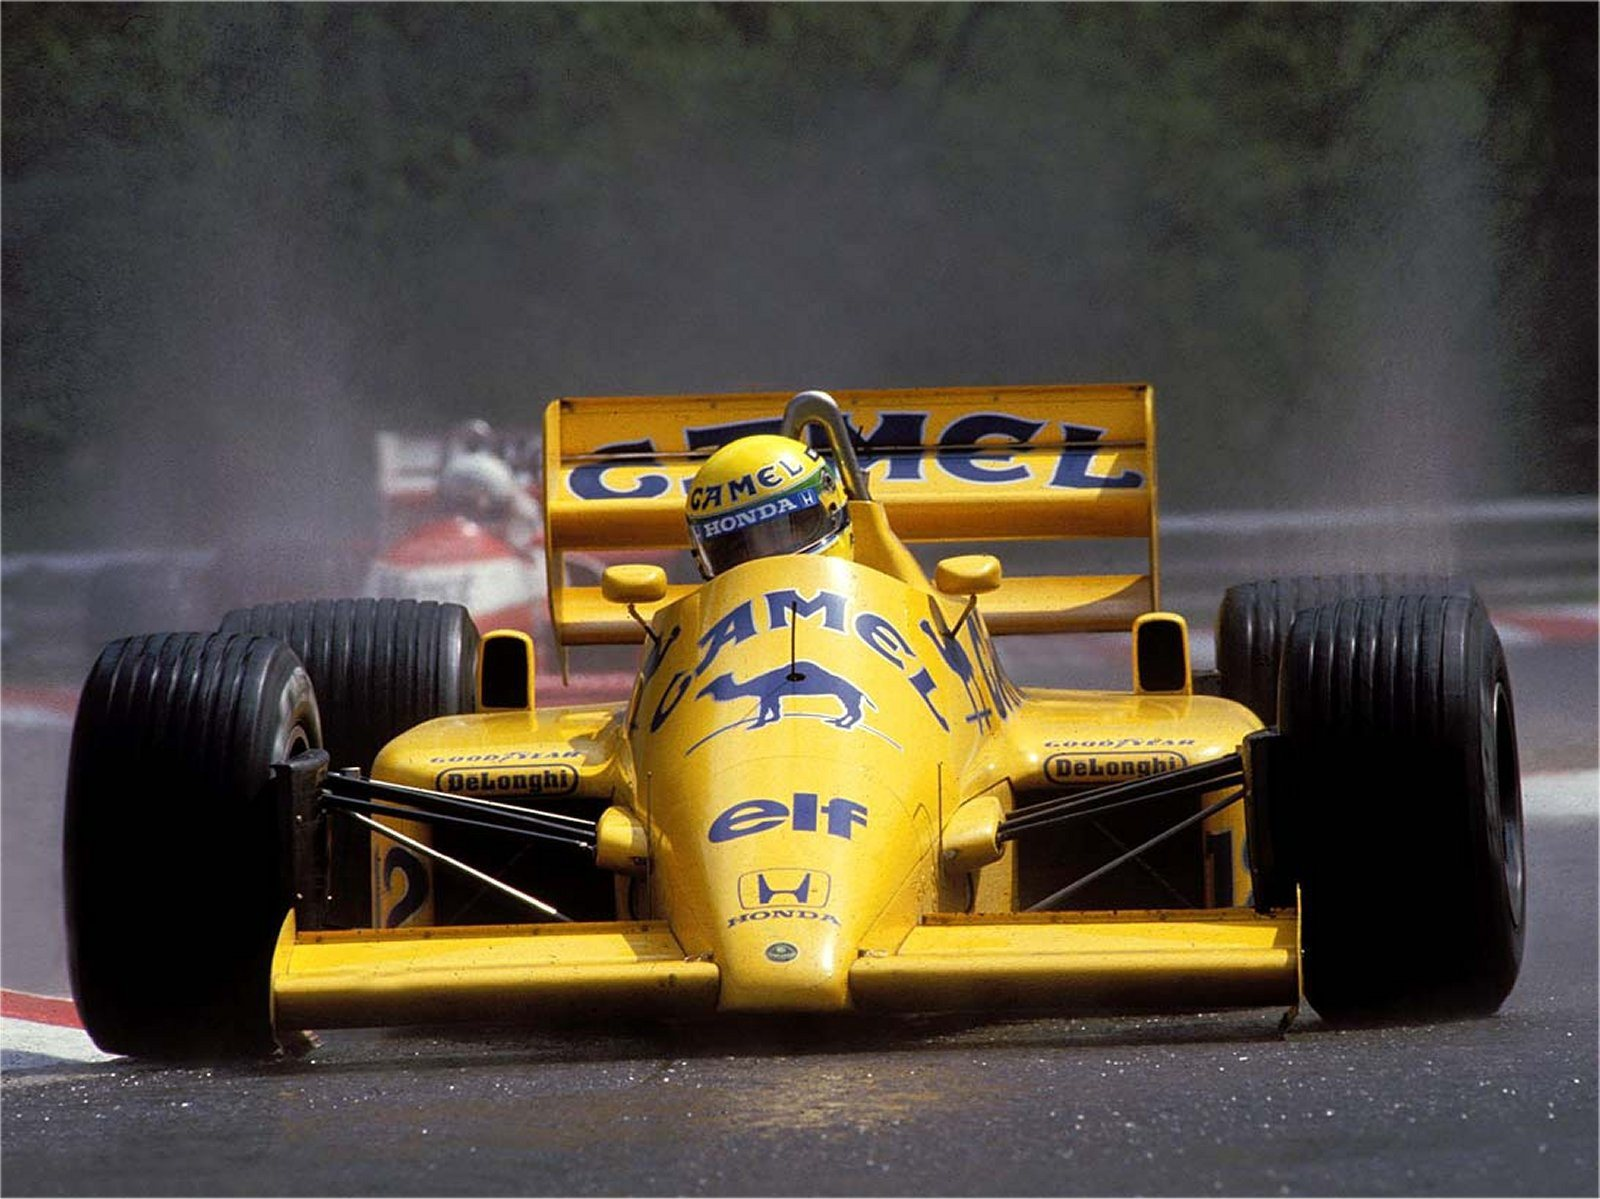 1987_spa_ayrton_senna_lotus_99t_high_resolution_desktop_1600x1199_wallpaper-289748.jpg